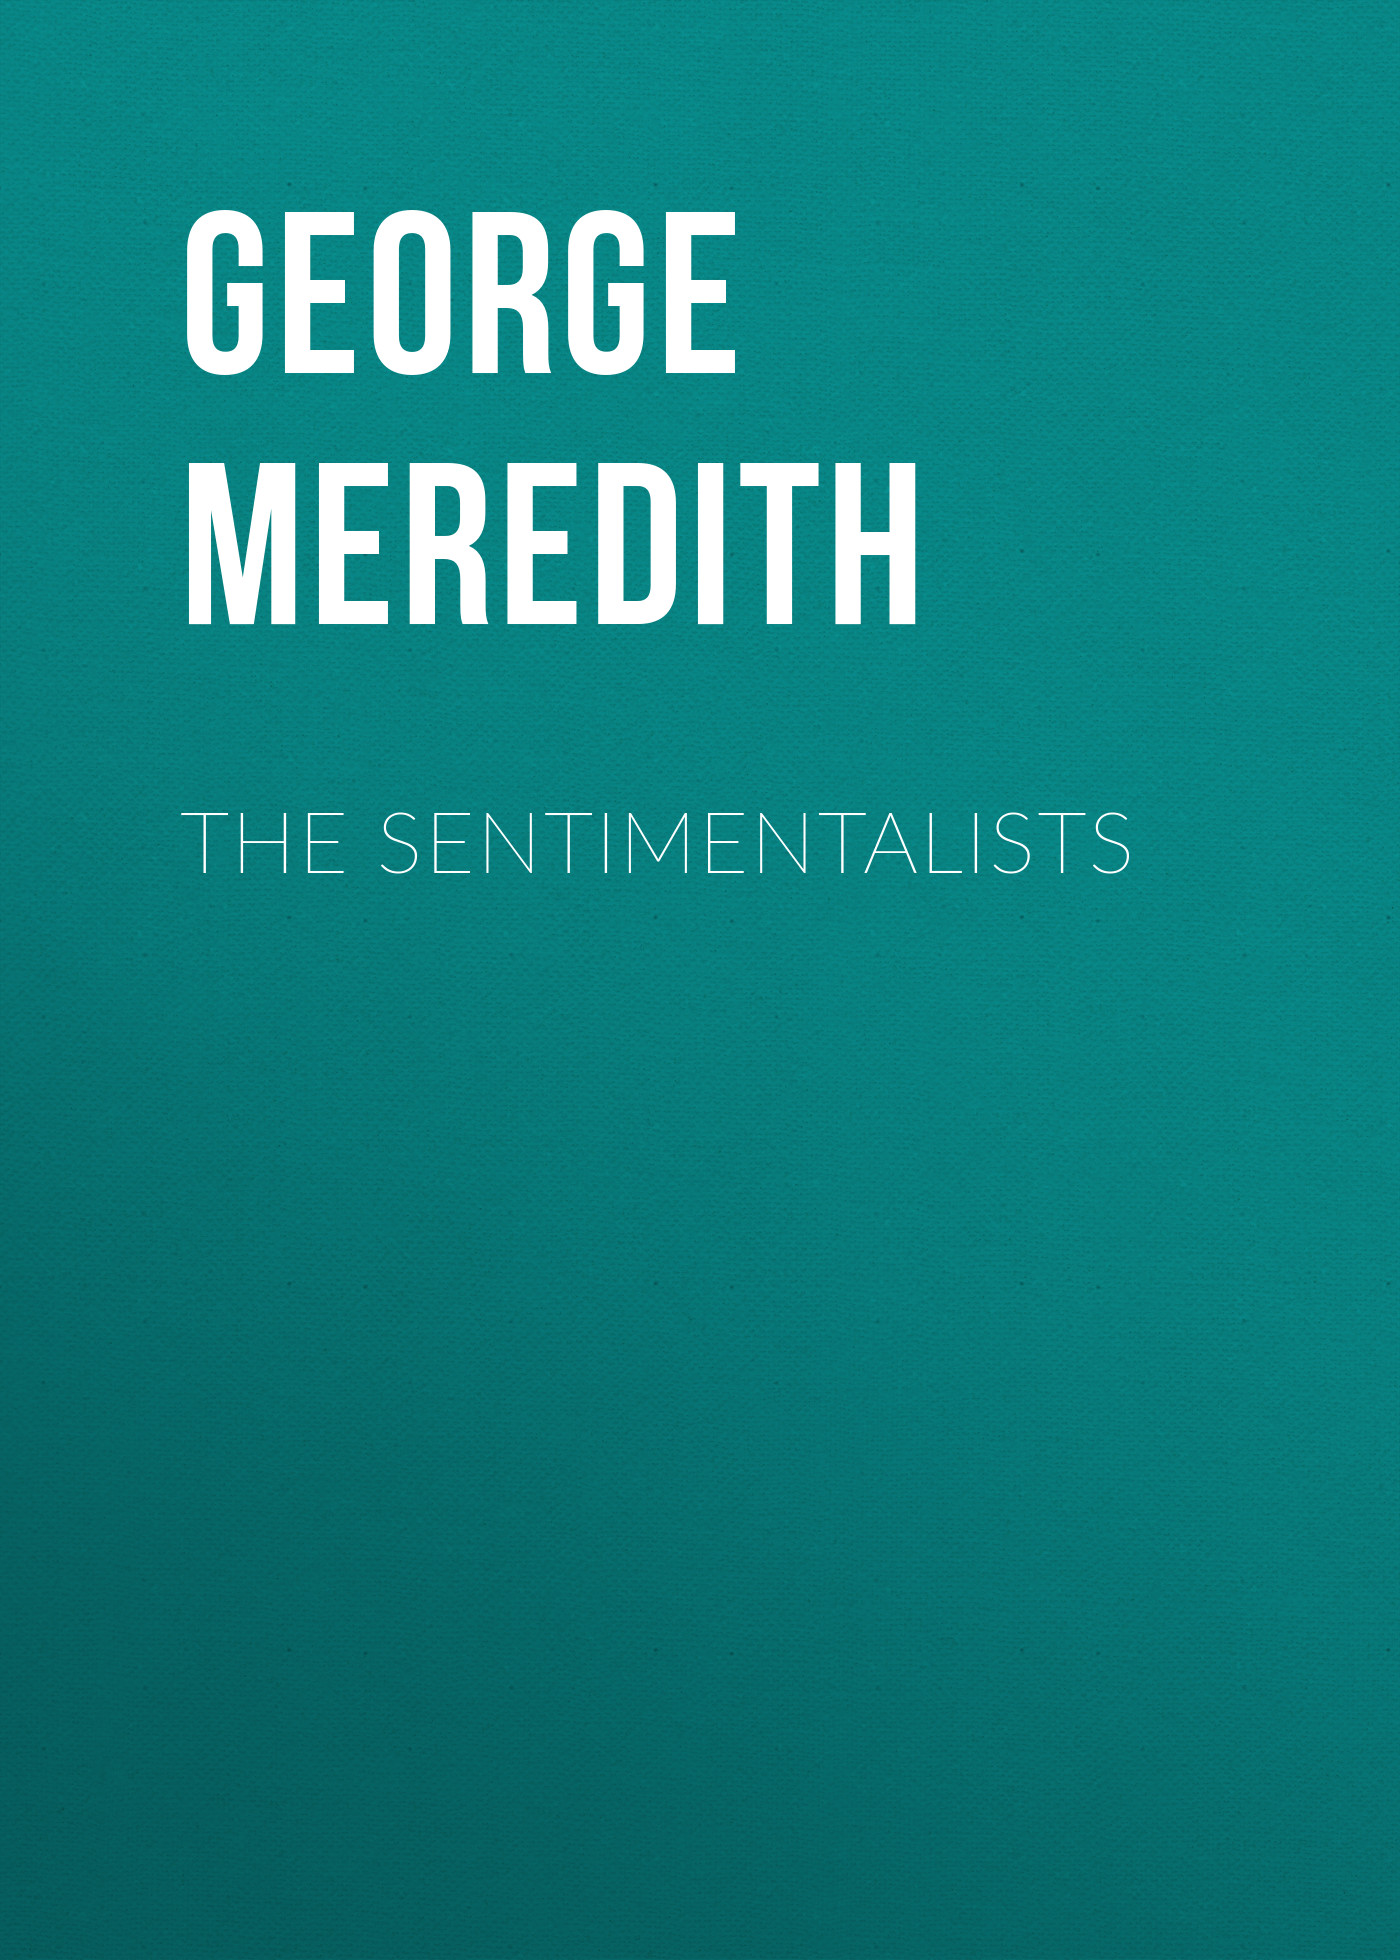 George Meredith The Sentimentalists george meredith the sentimentalists